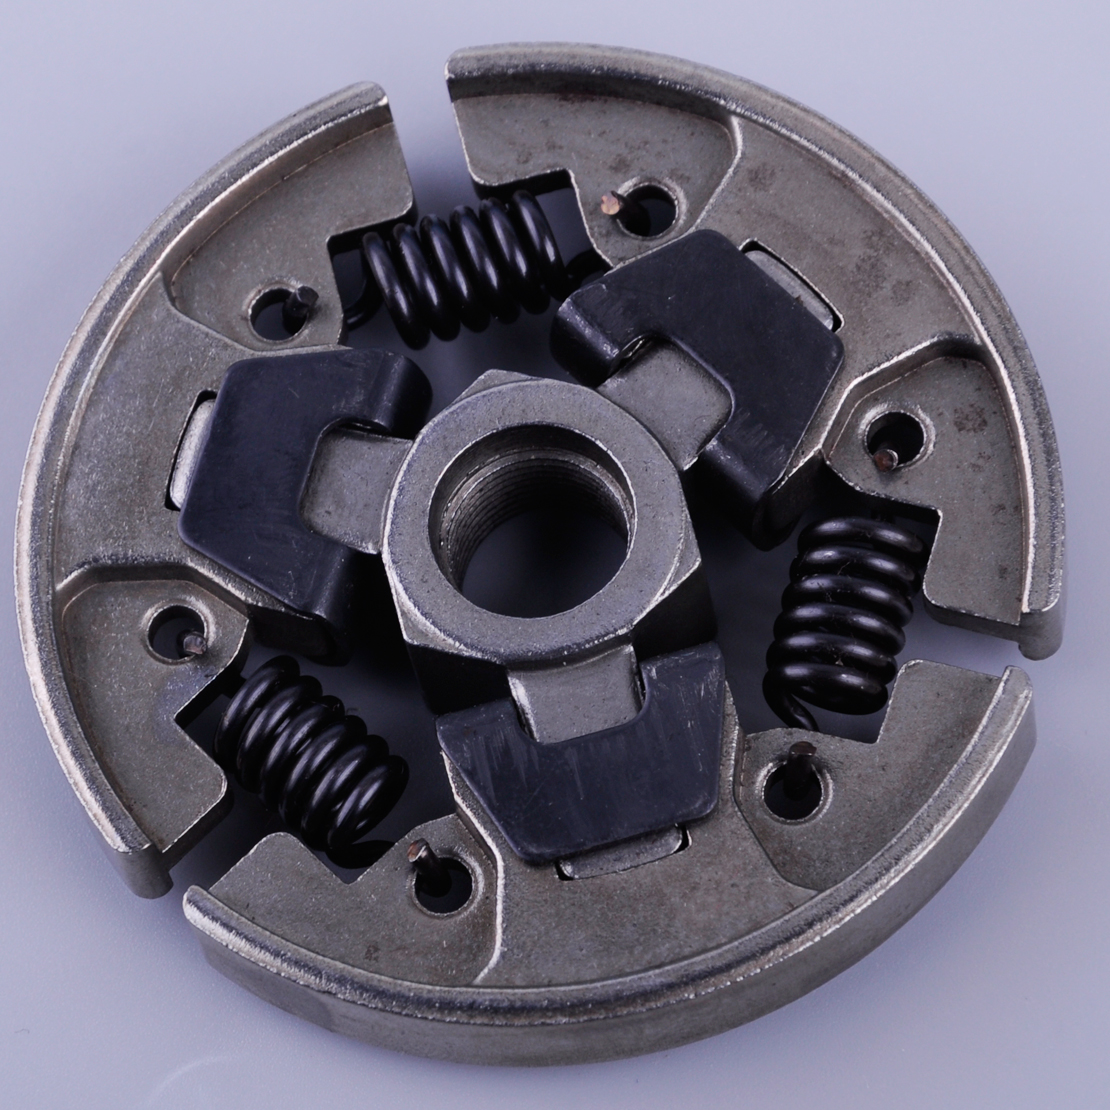 LETAOSK Clutch Assy Fit For Stihl 017 018 021 023 025 MS170 MS180 MS210 MS230 MS250 ChainsawAccessories